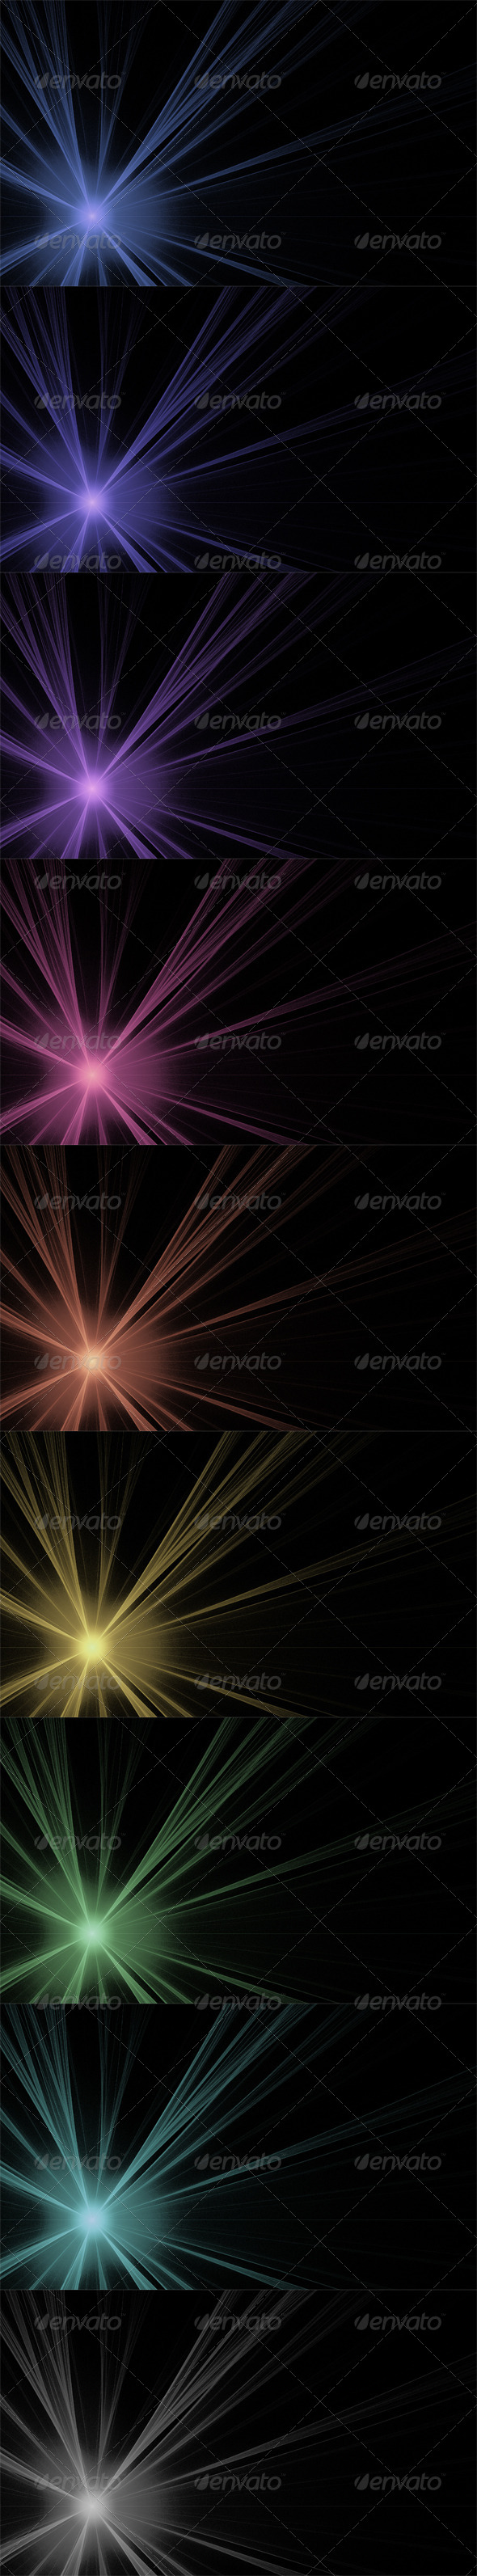 GraphicRiver Abstract Cosmic Background 3413x2048px 6430334